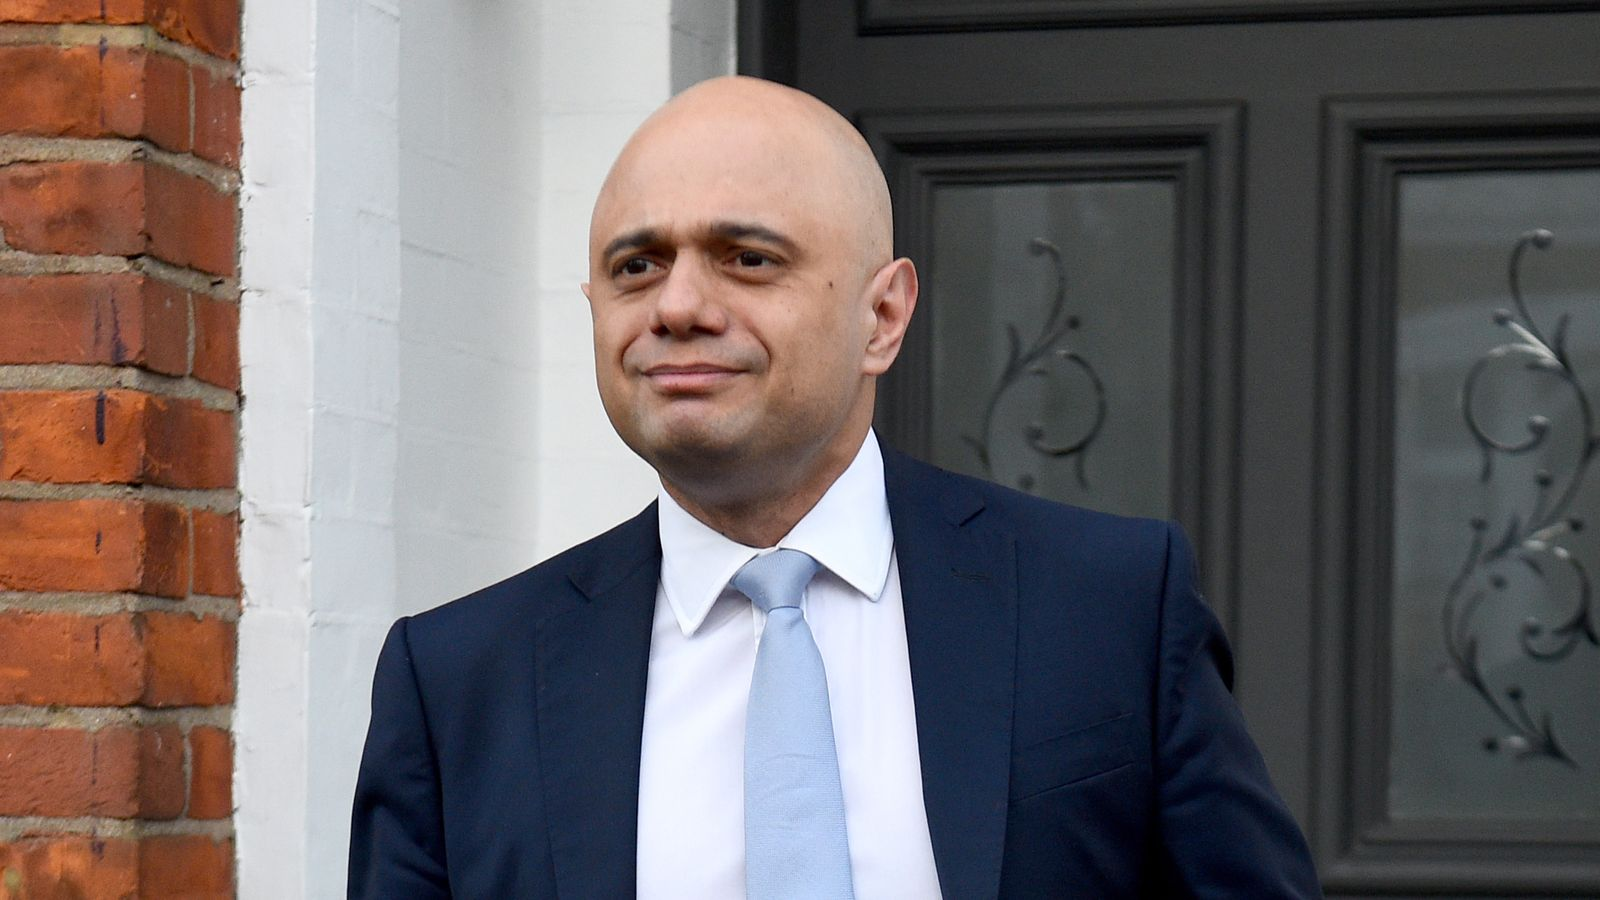 COVID-19: Sajid Javid criticised as 'insensitive' after telling people not to 'cower from' the virus